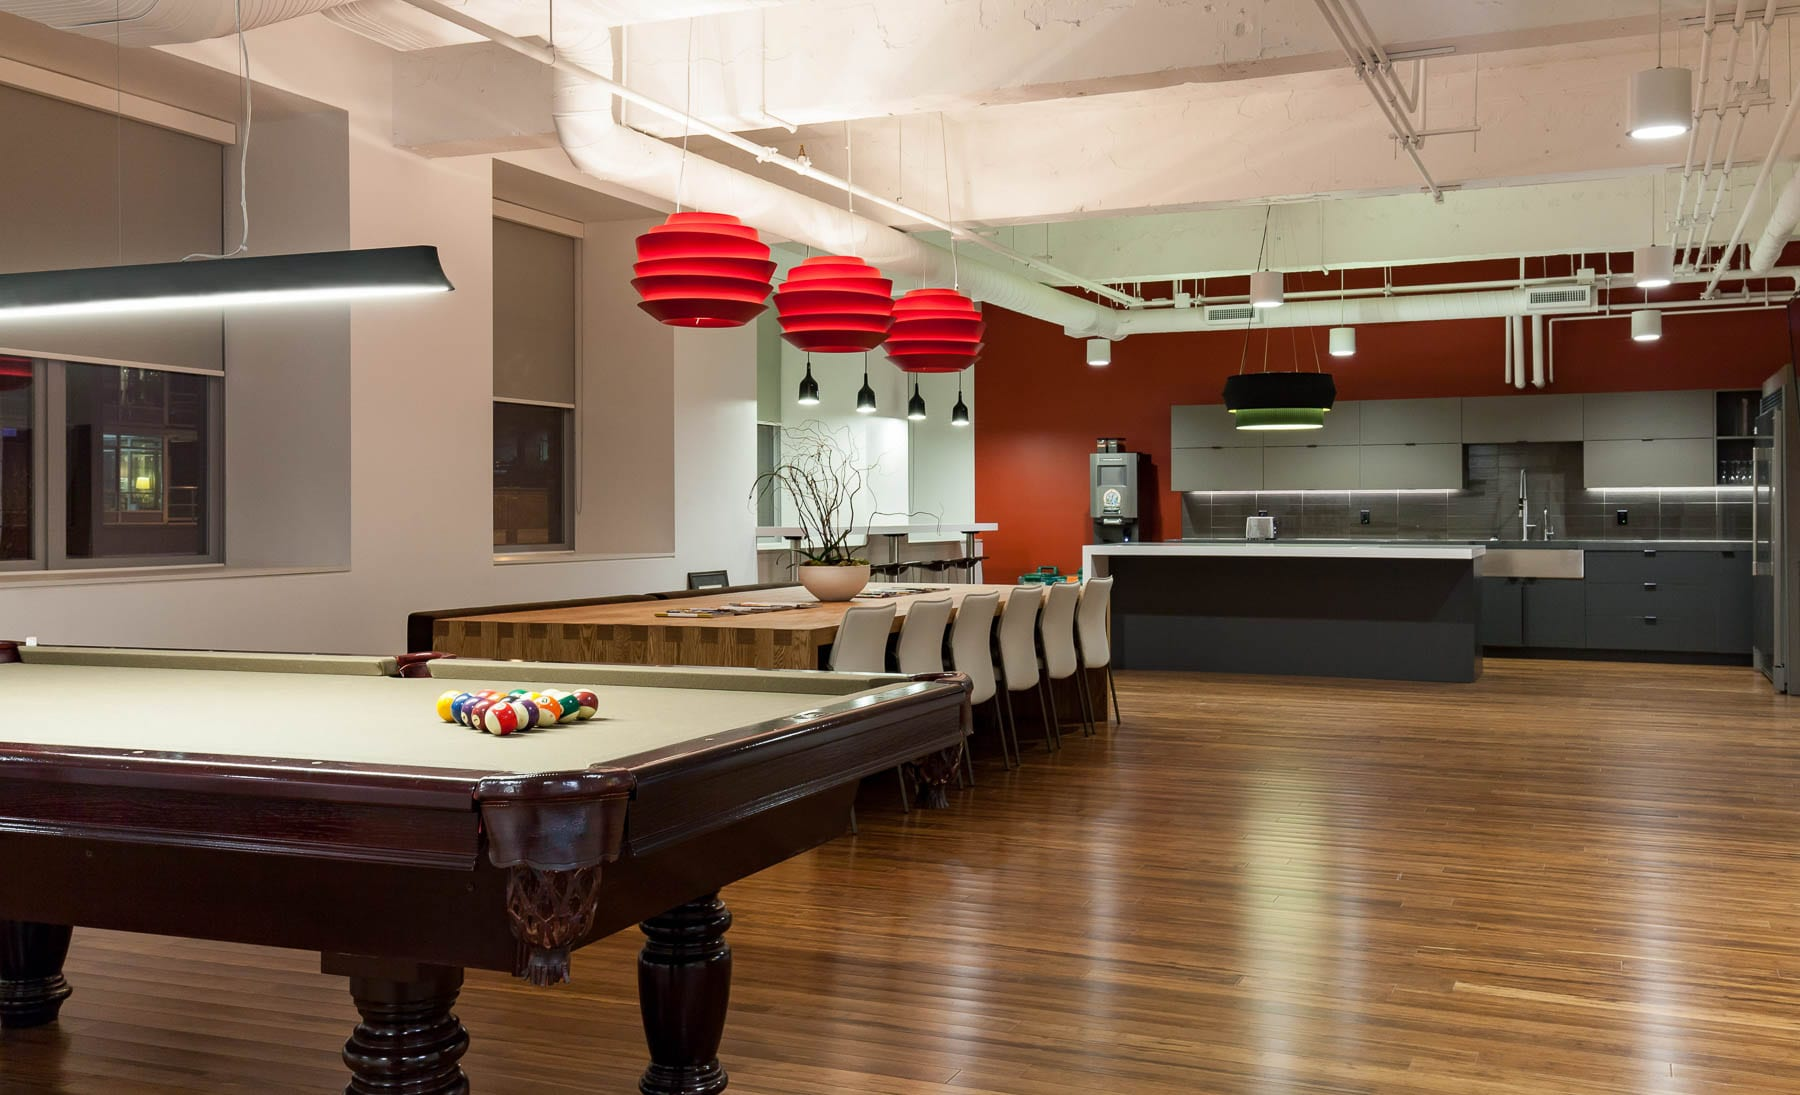 MIABC office's interior improvements - kitchen with exposed ceiling, pool table